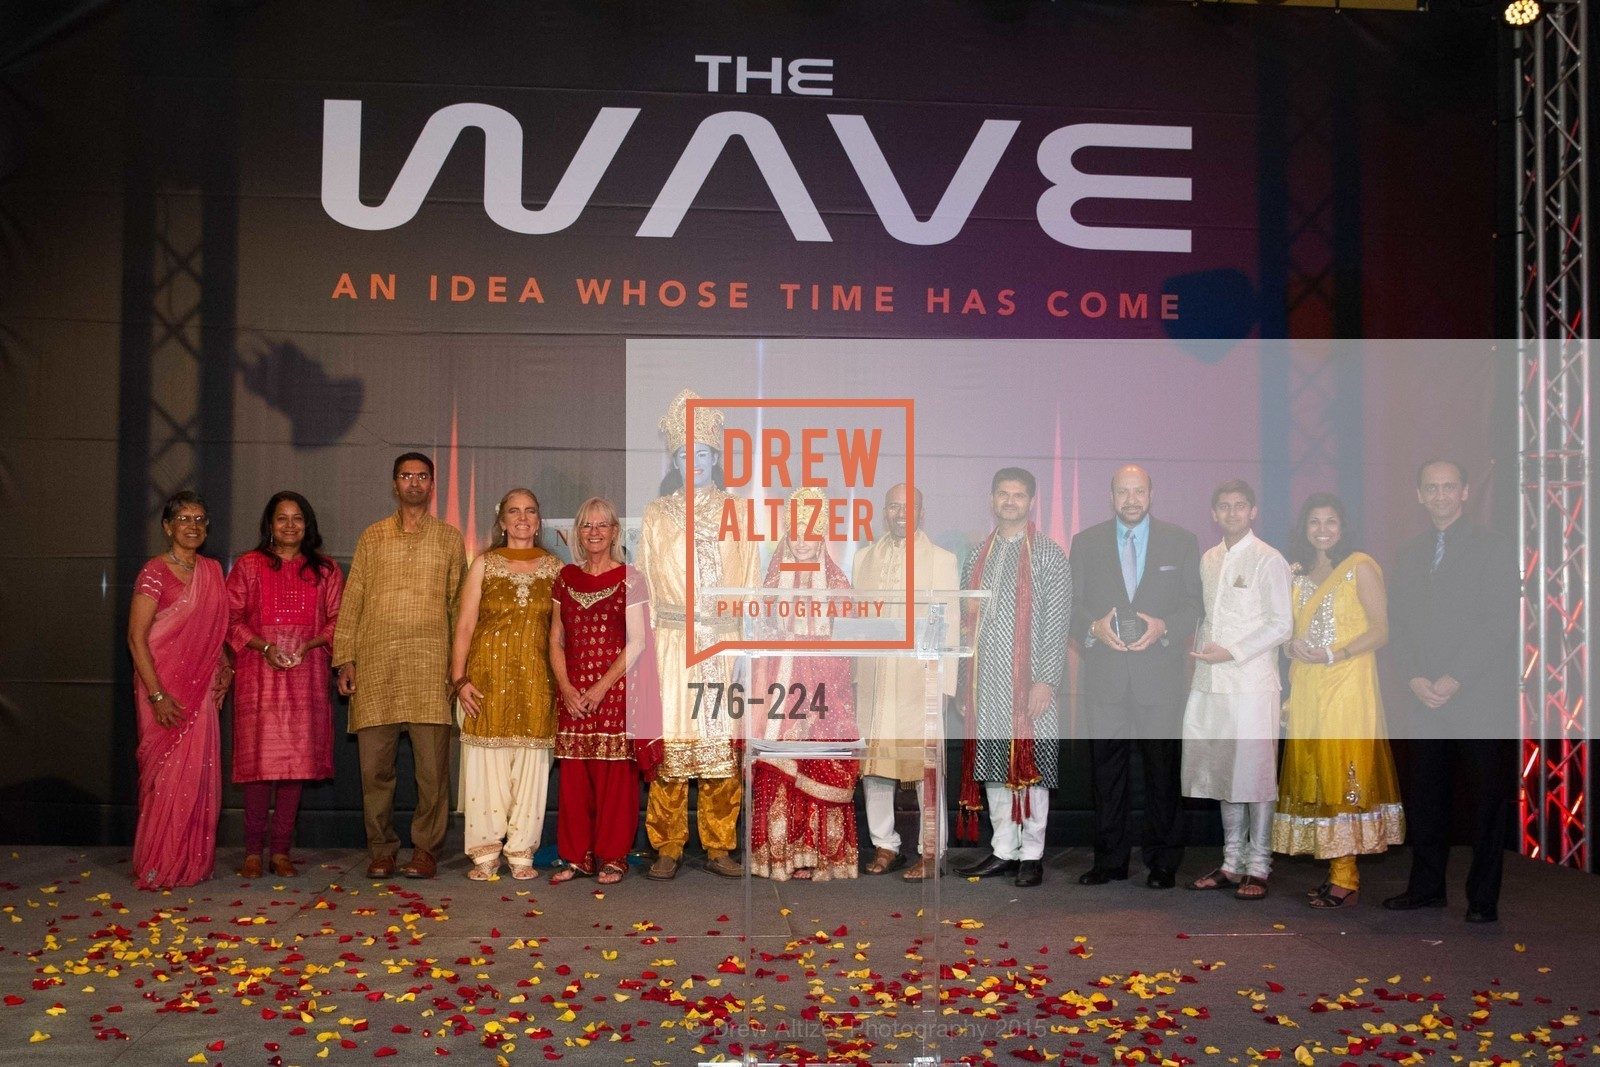 Neerja Raman, Shalini Nataraj, Rajesh Setty, Holden Smith, Lily Peterson, Sunil Vemuri, Jimmy Nanda, Ray Walia, Saagar Gupta, Lipi Roy, Ketan Shah, Life Chiropractic College West Presents The Wave, Hyatt Regency San Francisco Airport. 1333 Old Bayshore Hwy, August 8th, 2015,Drew Altizer, Drew Altizer Photography, full-service agency, private events, San Francisco photographer, photographer california